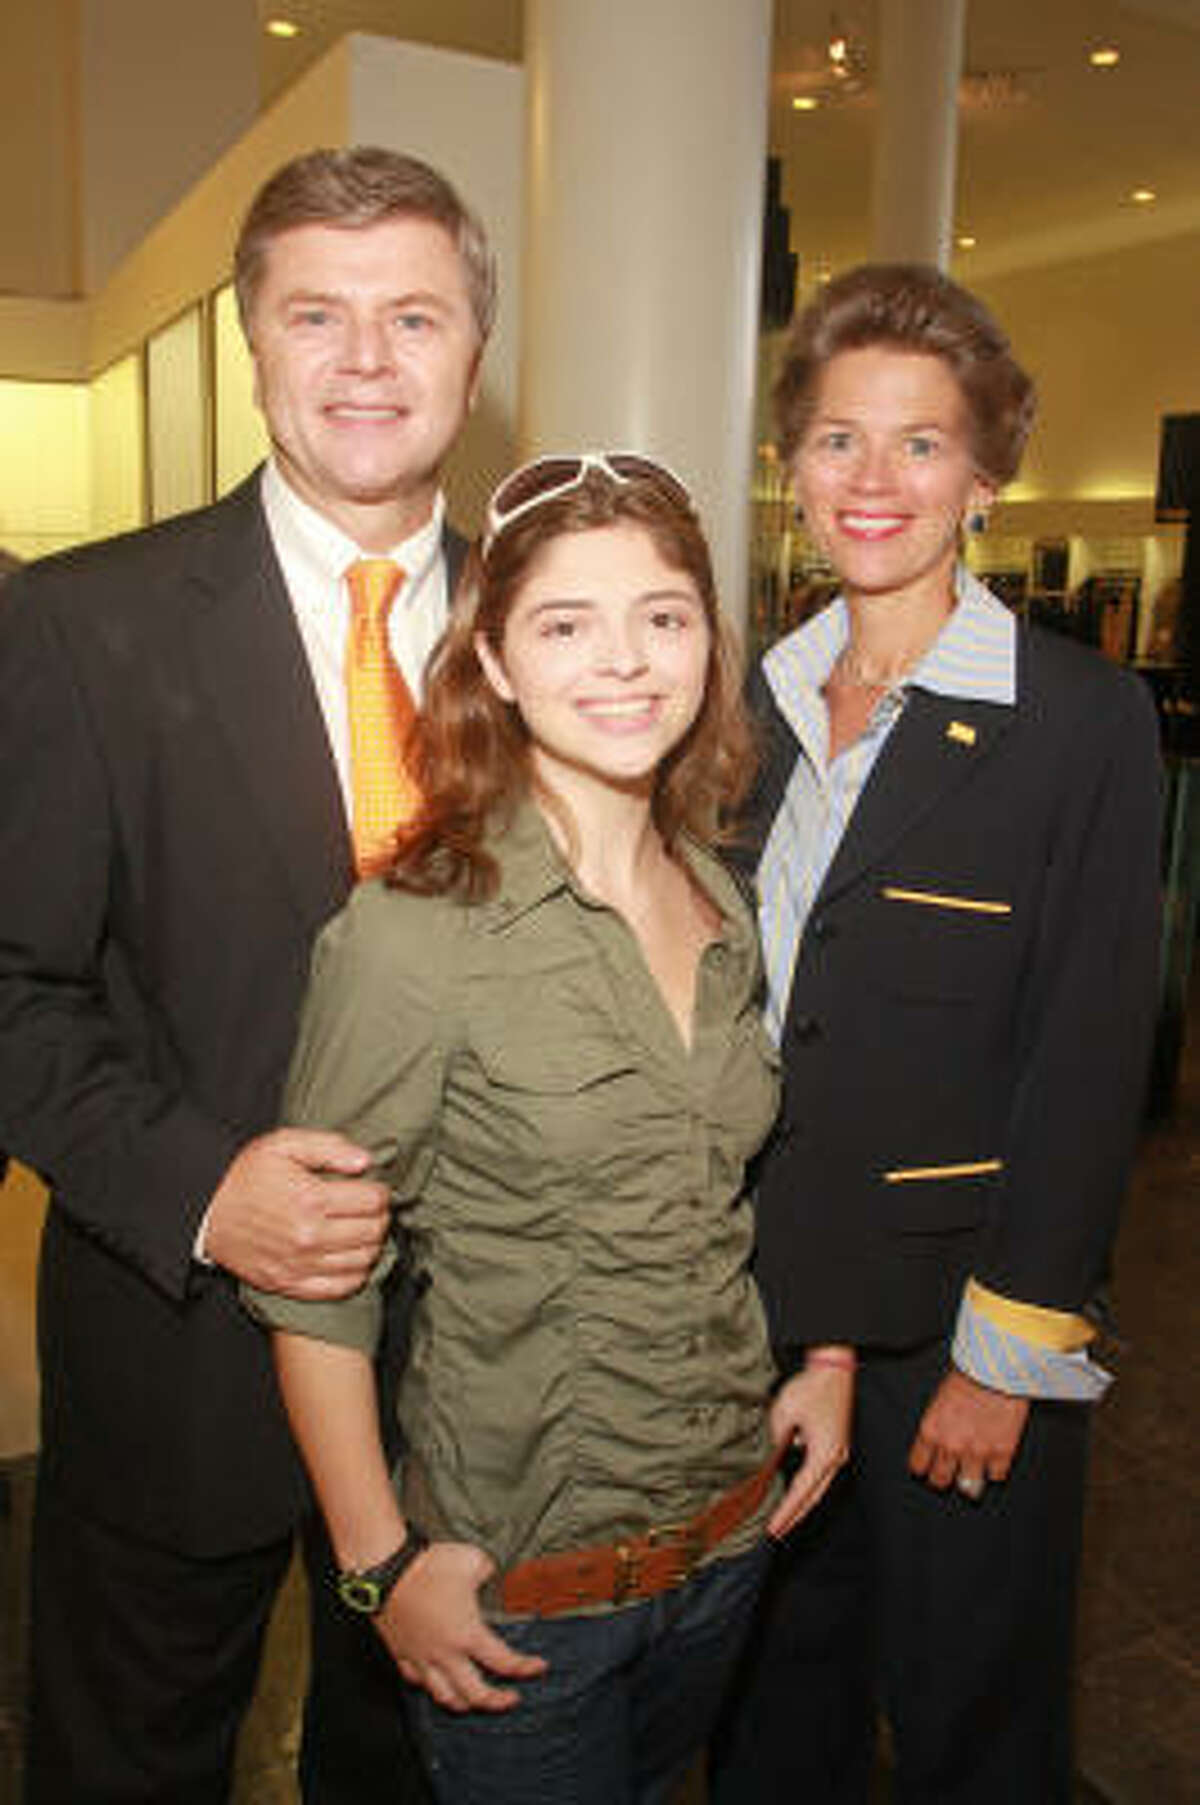 Jim Pearson, from left, with his daughter, Megan, and sister, Bain Pearson.